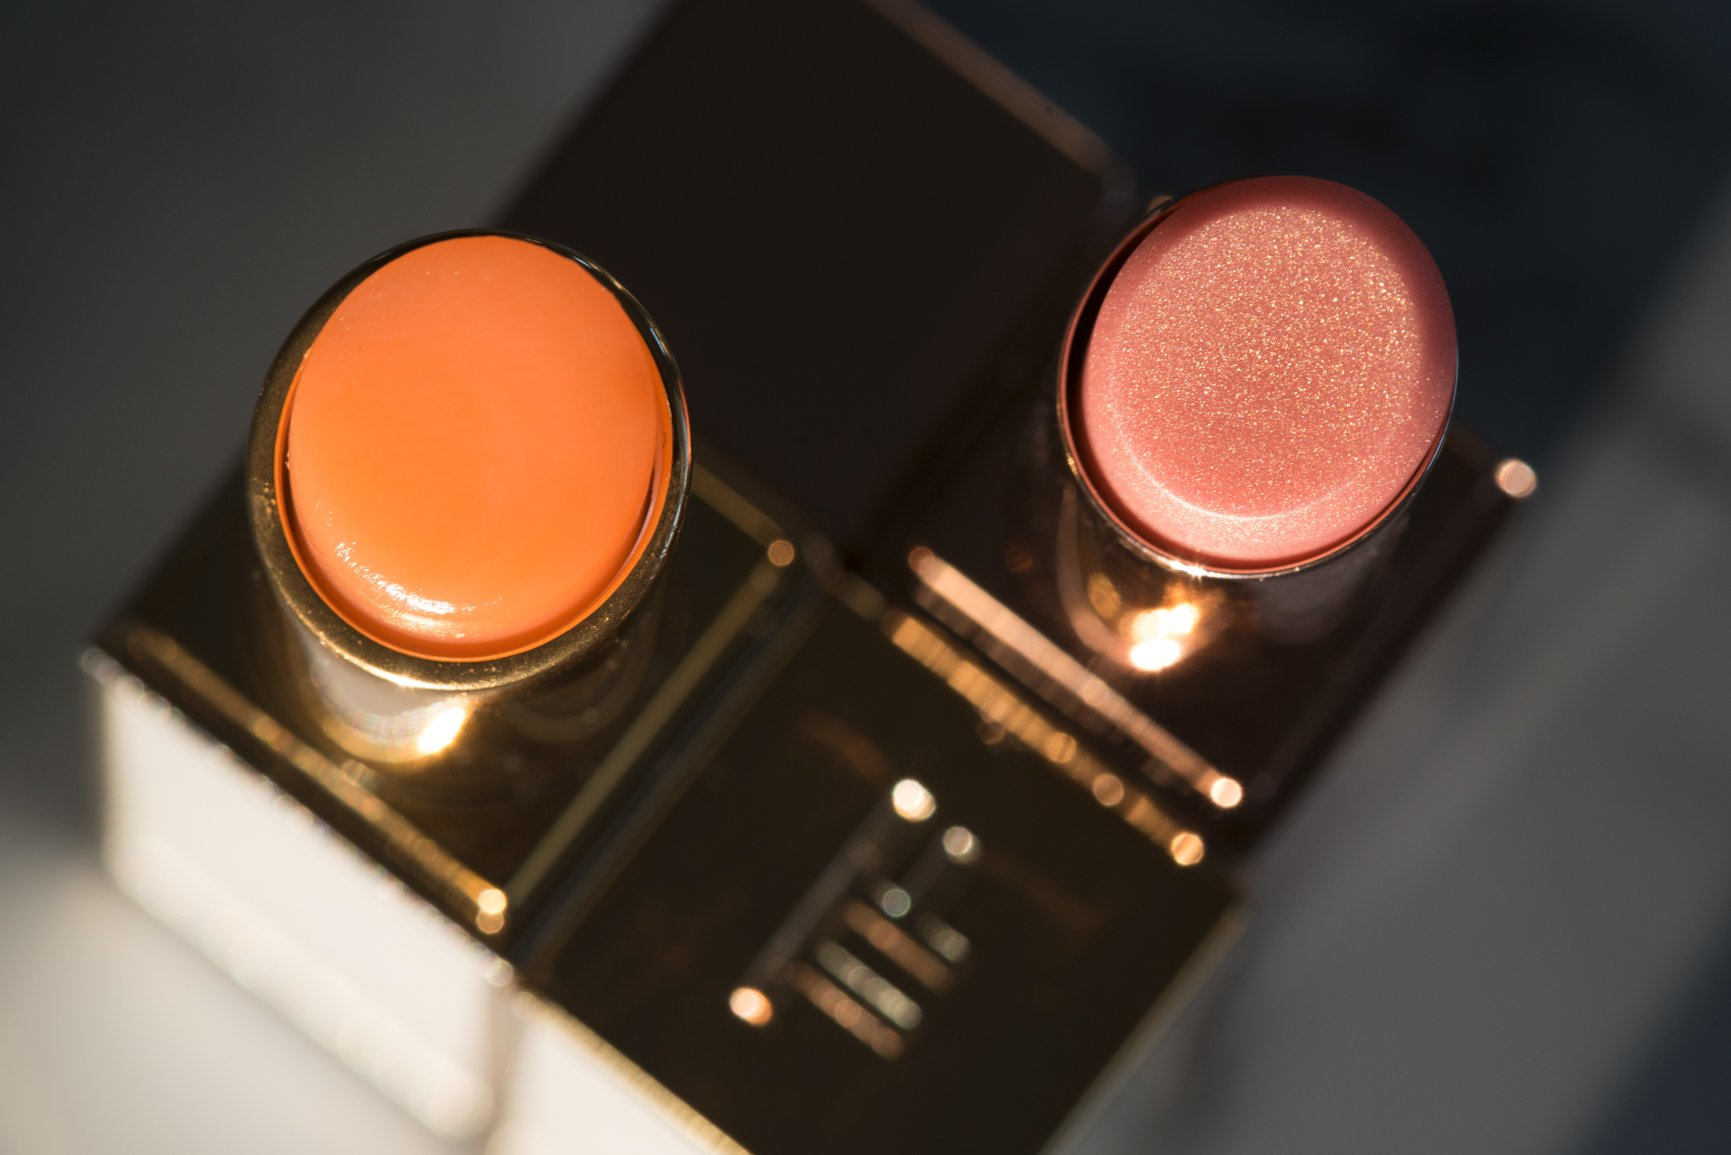 sunkissedblush-Tom-Ford-Lumière-Lip-Orgasm-Afterglow-Lip-Balm (5 of 13)